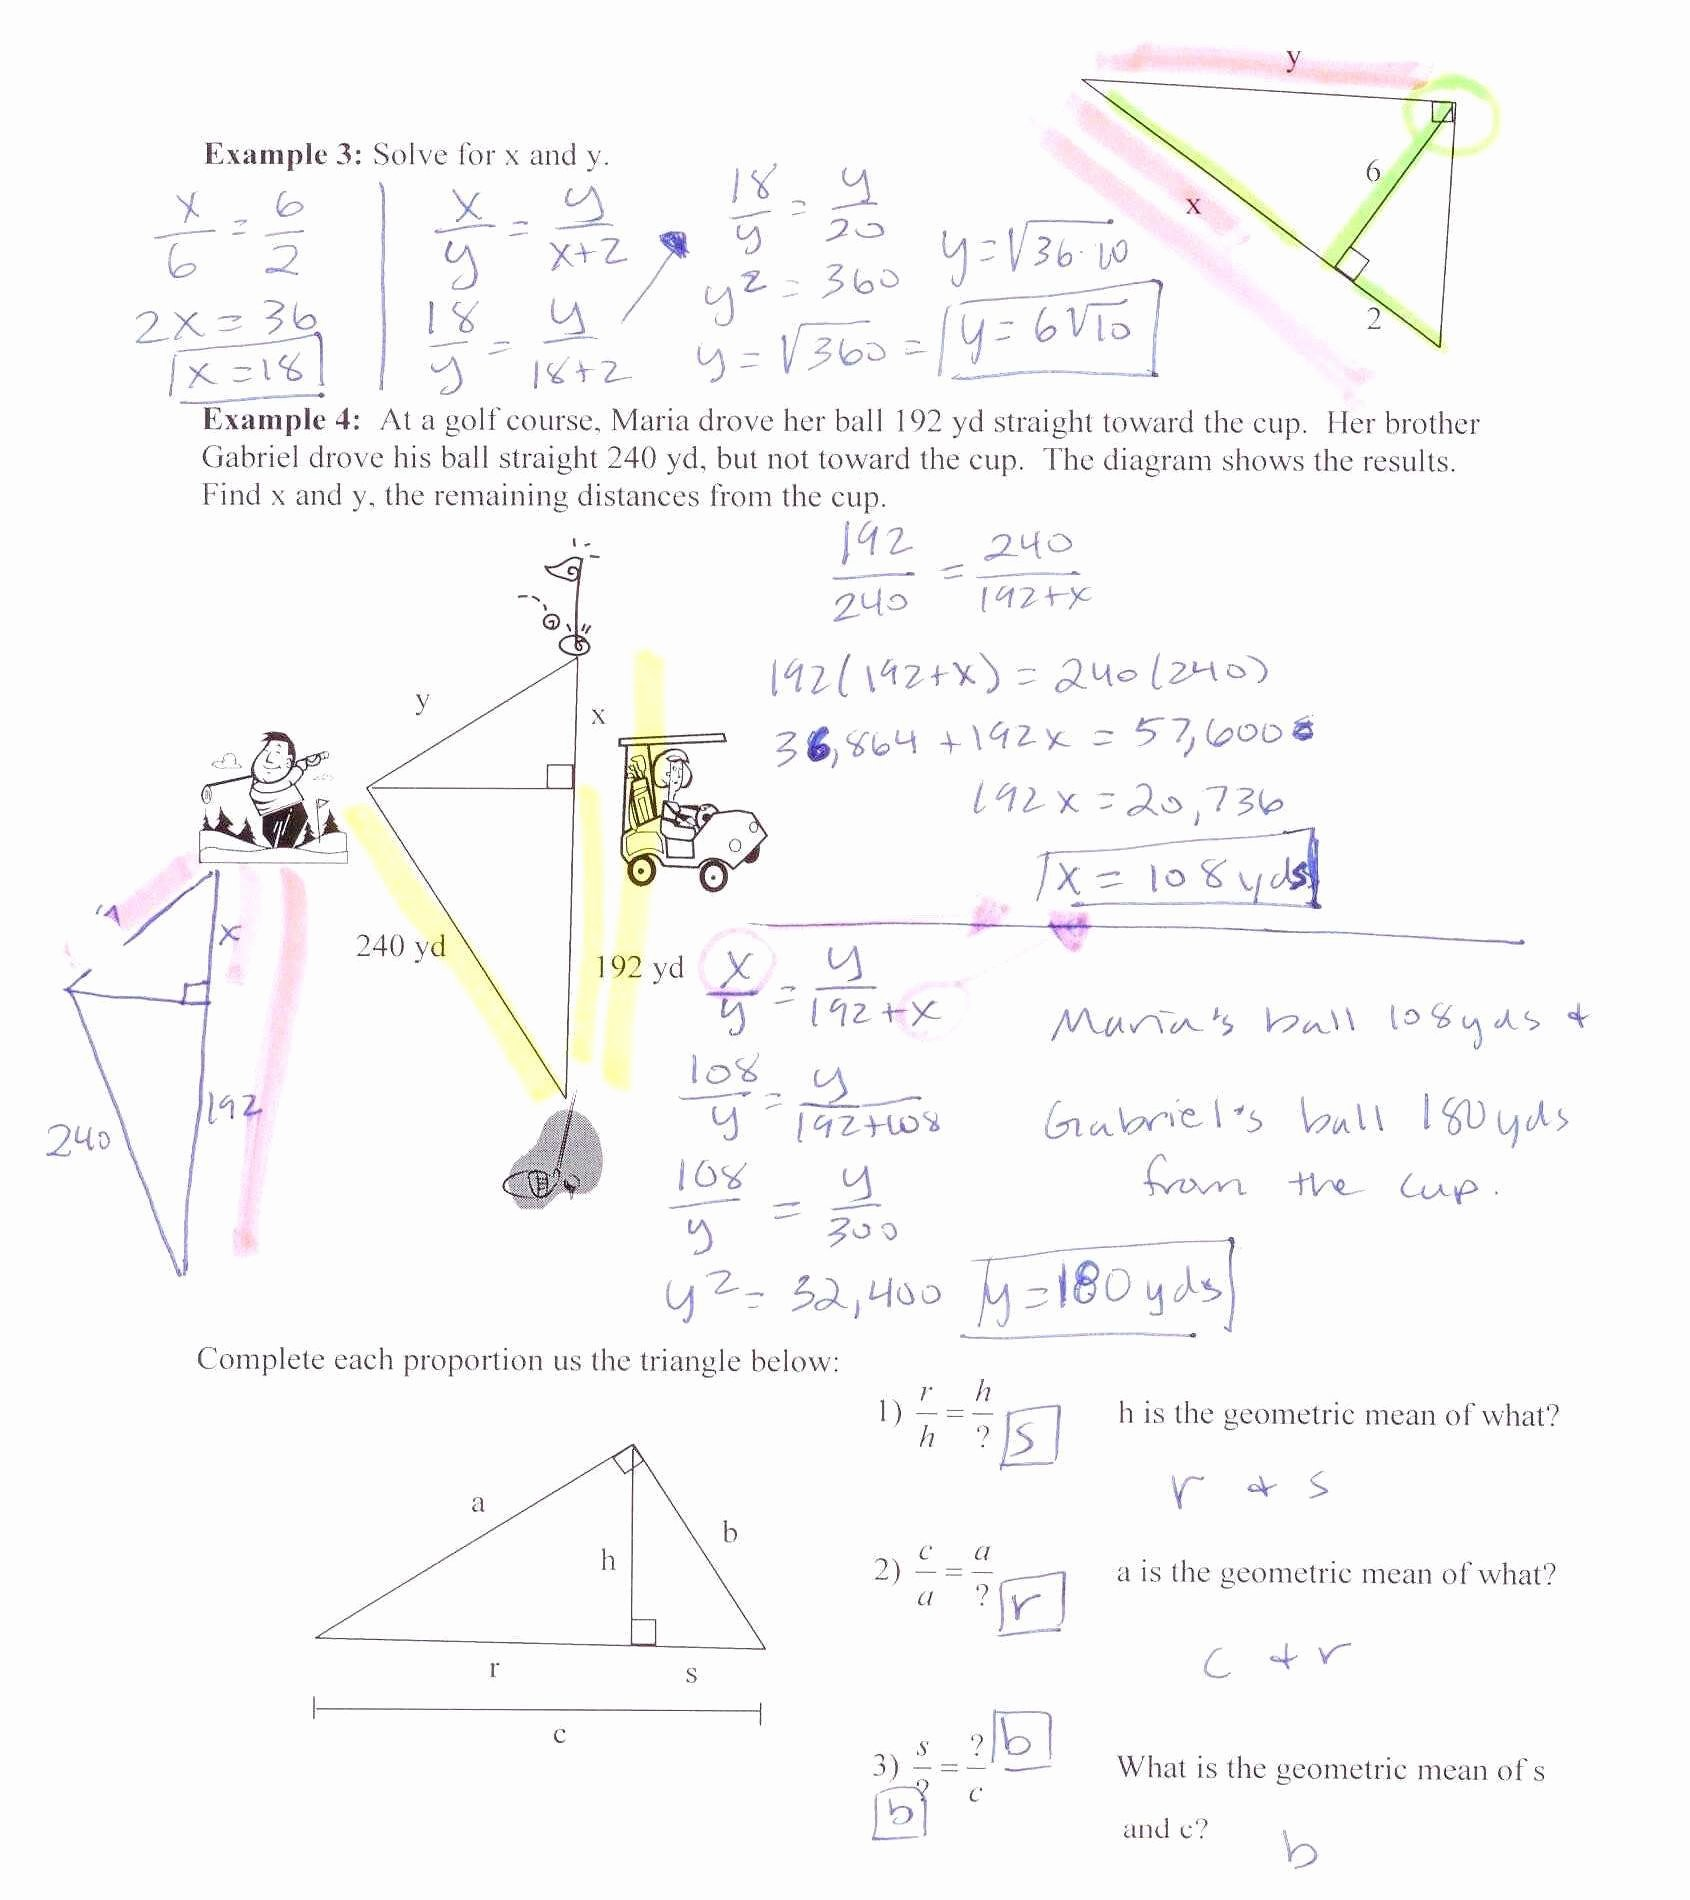 Triangle Congruence Worksheet Answers Best Of Geometry Worksheet Congruent Triangles Sss and Sas Answers